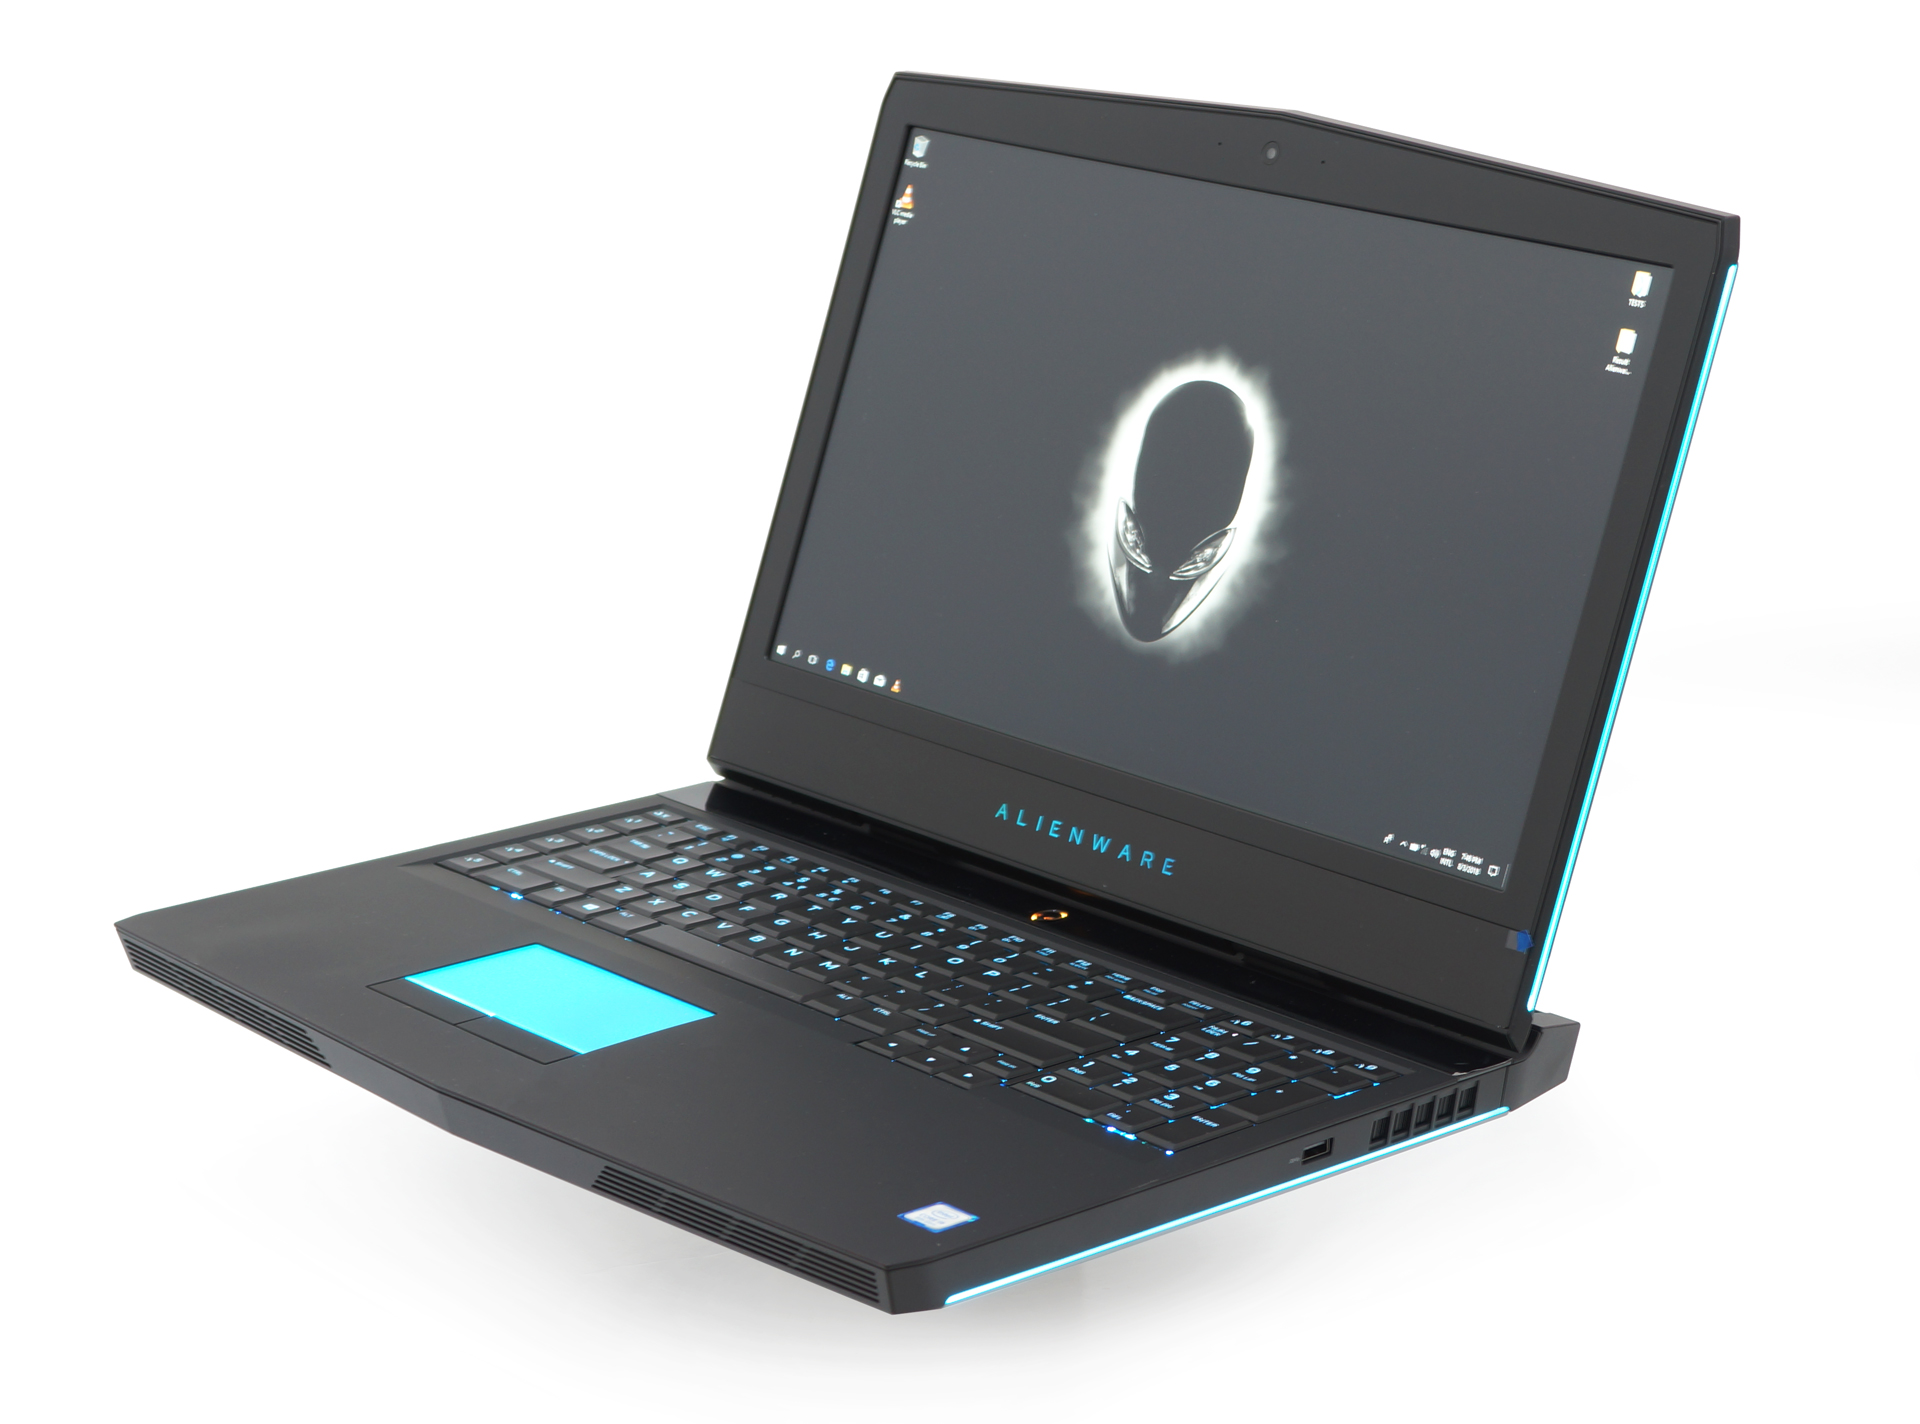 Alienware 17 R5 review – ultimate mobile gaming rig